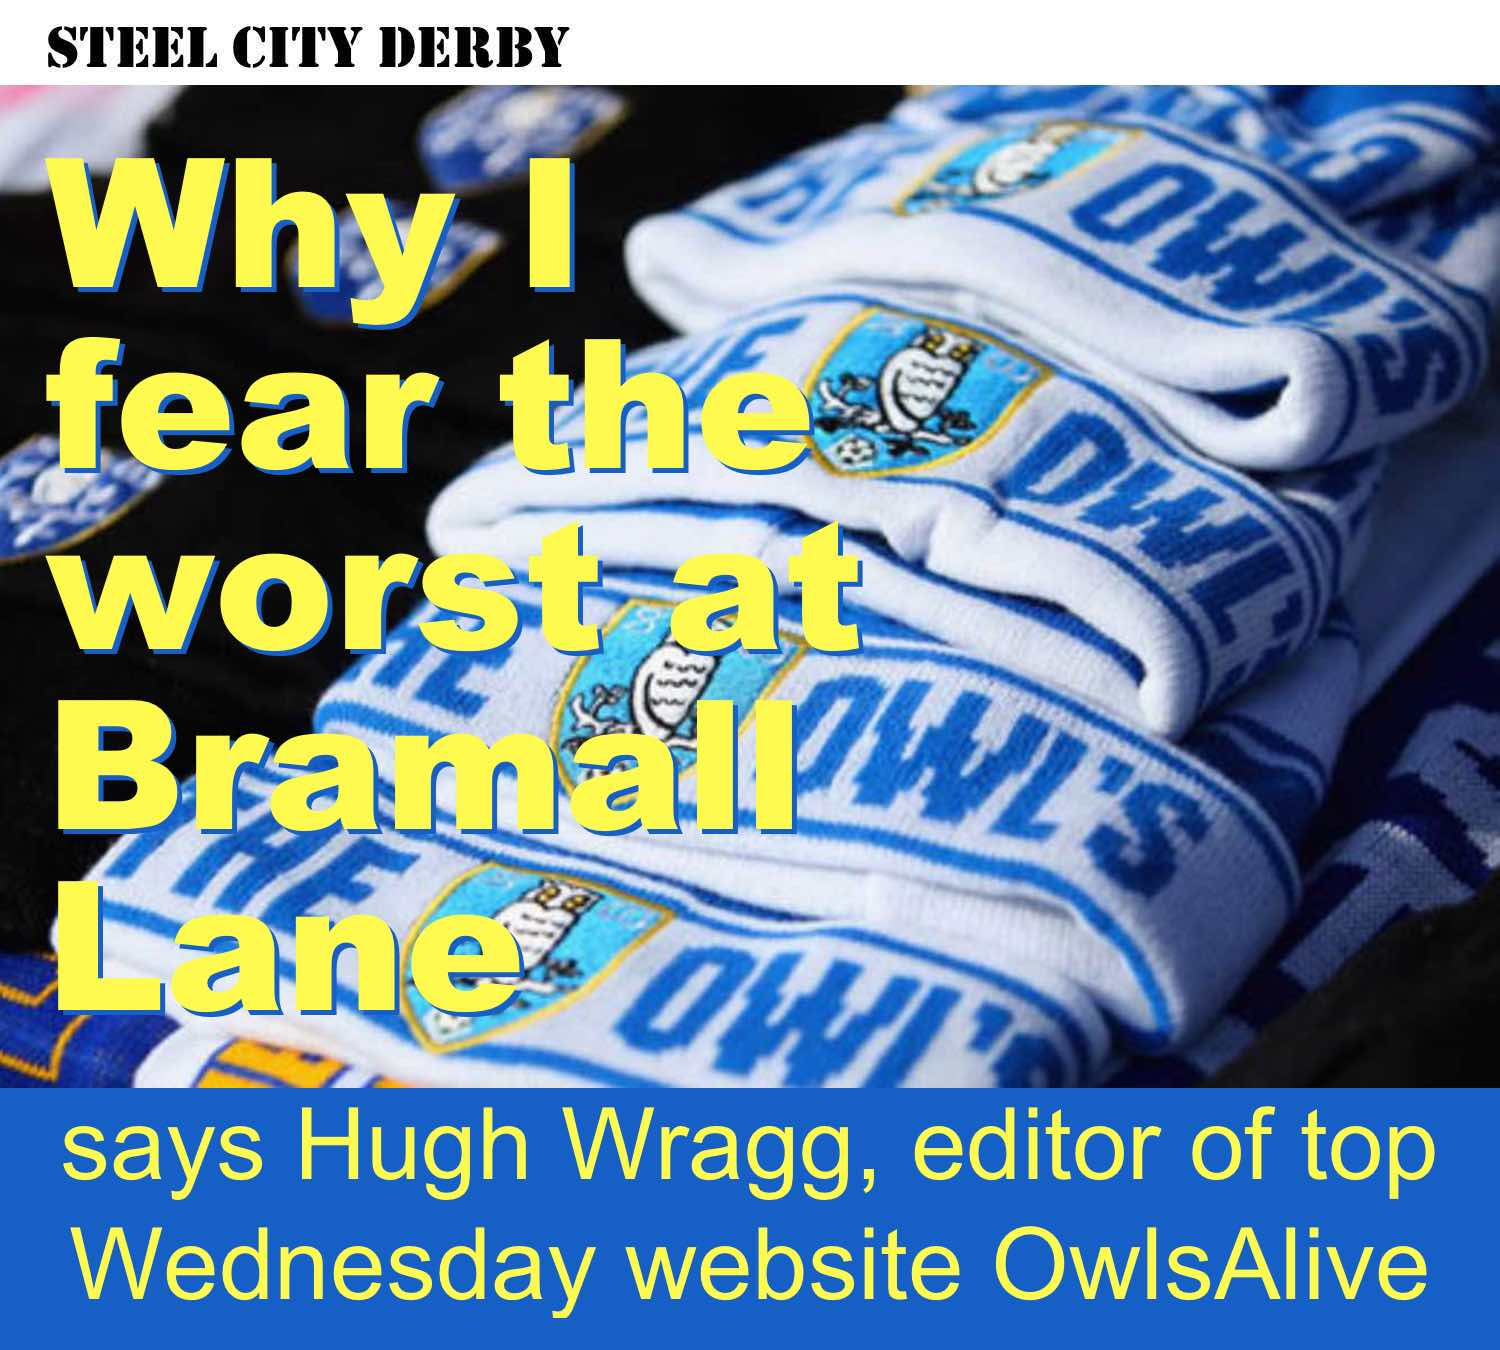 Why Sheffield Wednesday fans fear the worst ahead of Steel City derby at Bramall Lane